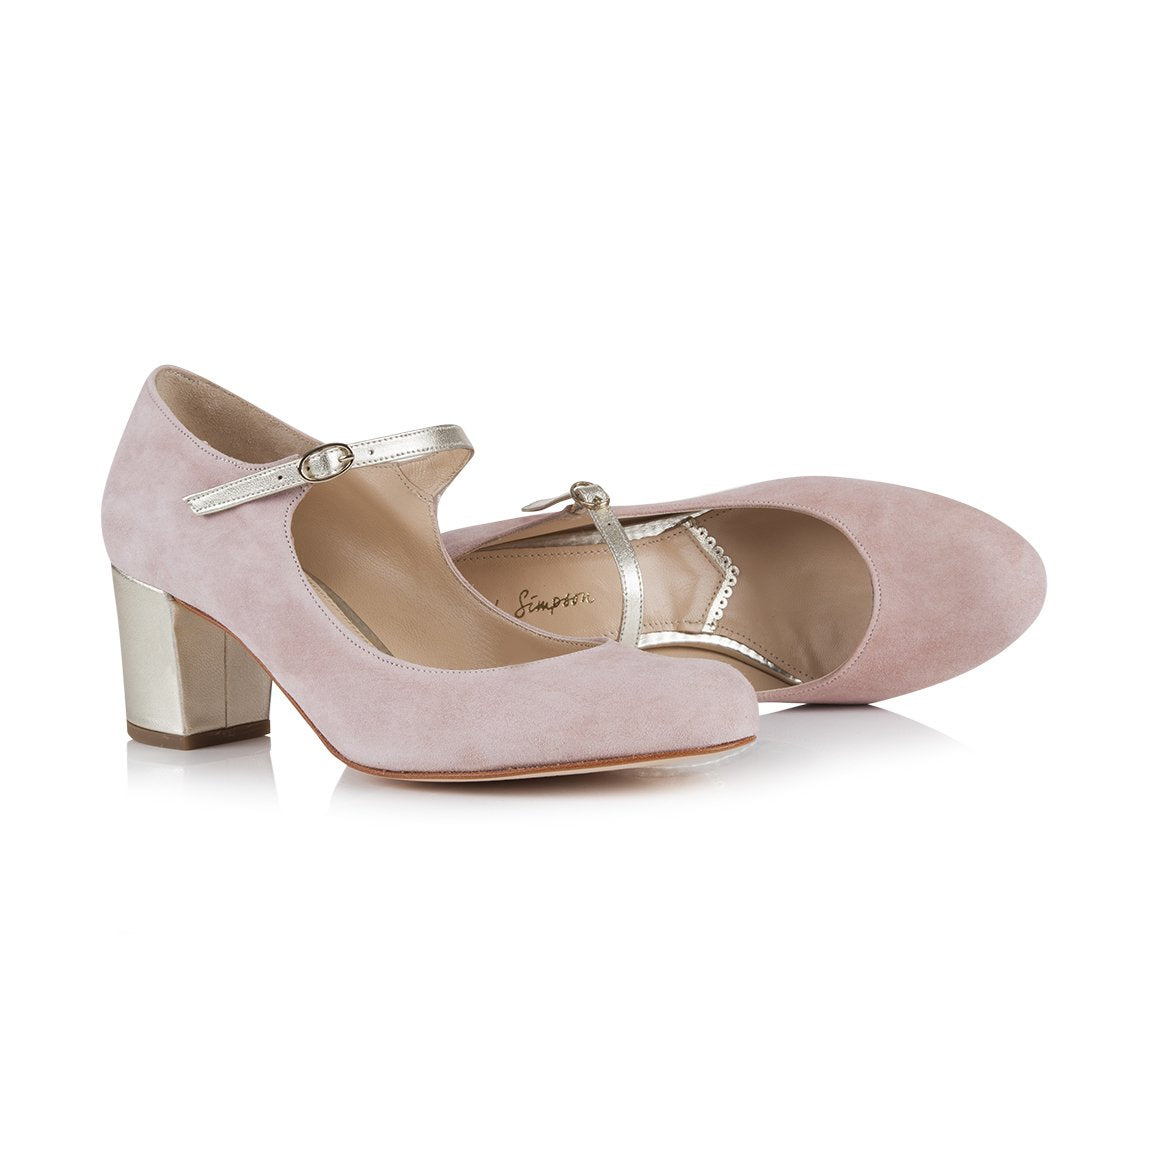 Rachel Simpson Pink Block Heel Mary Jane Shoe